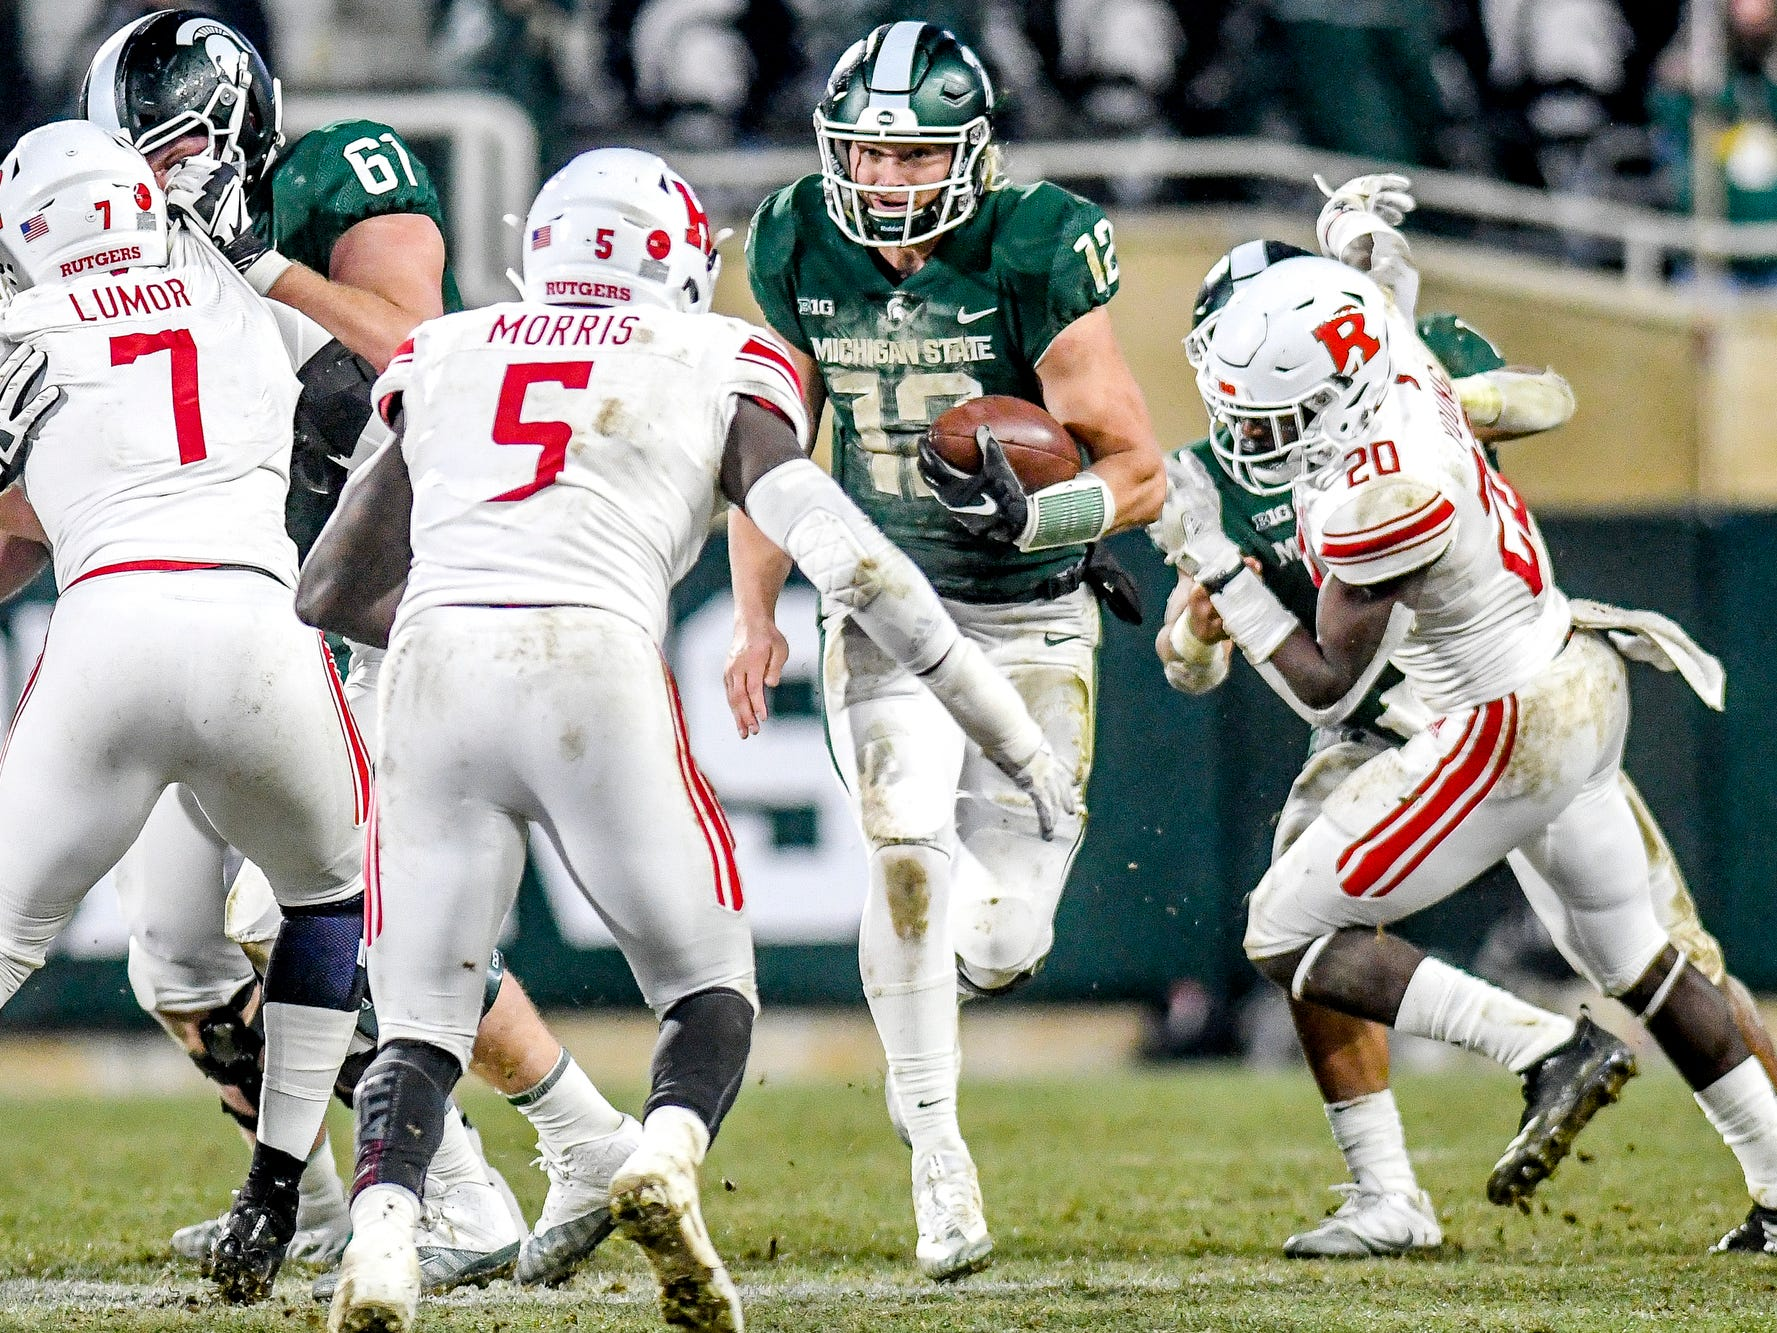 Michigan State's quarterback Rocky Lombardi runs for a gain during the second quarter on Saturday, Nov. 24, 2018, at Spartan Stadium in East Lansing.